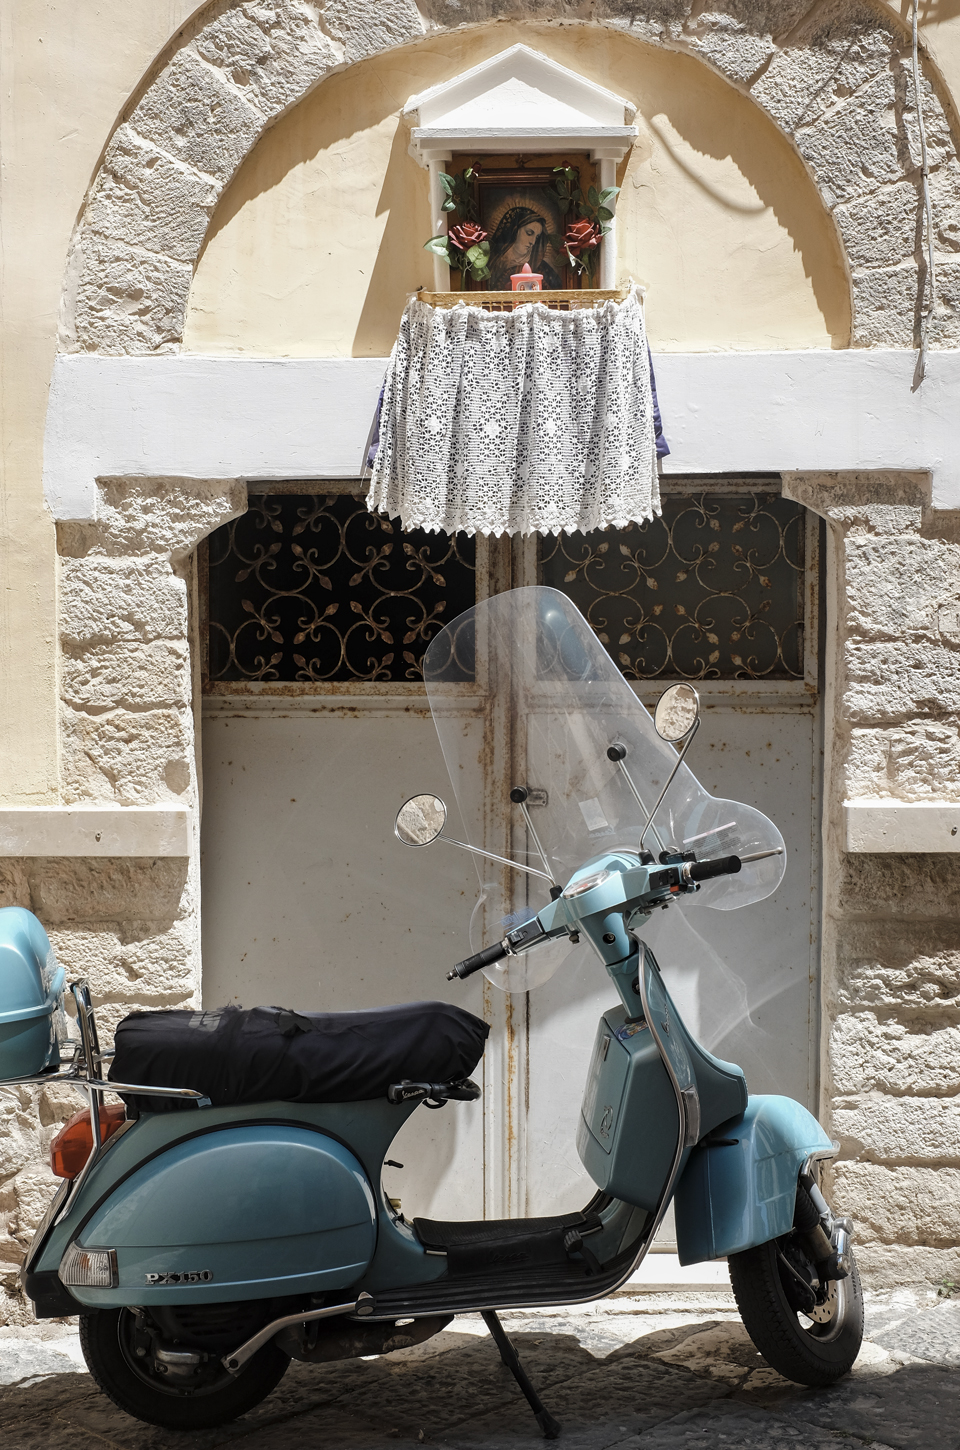 A glimpse of Puglia, blue scooter parked in Bari